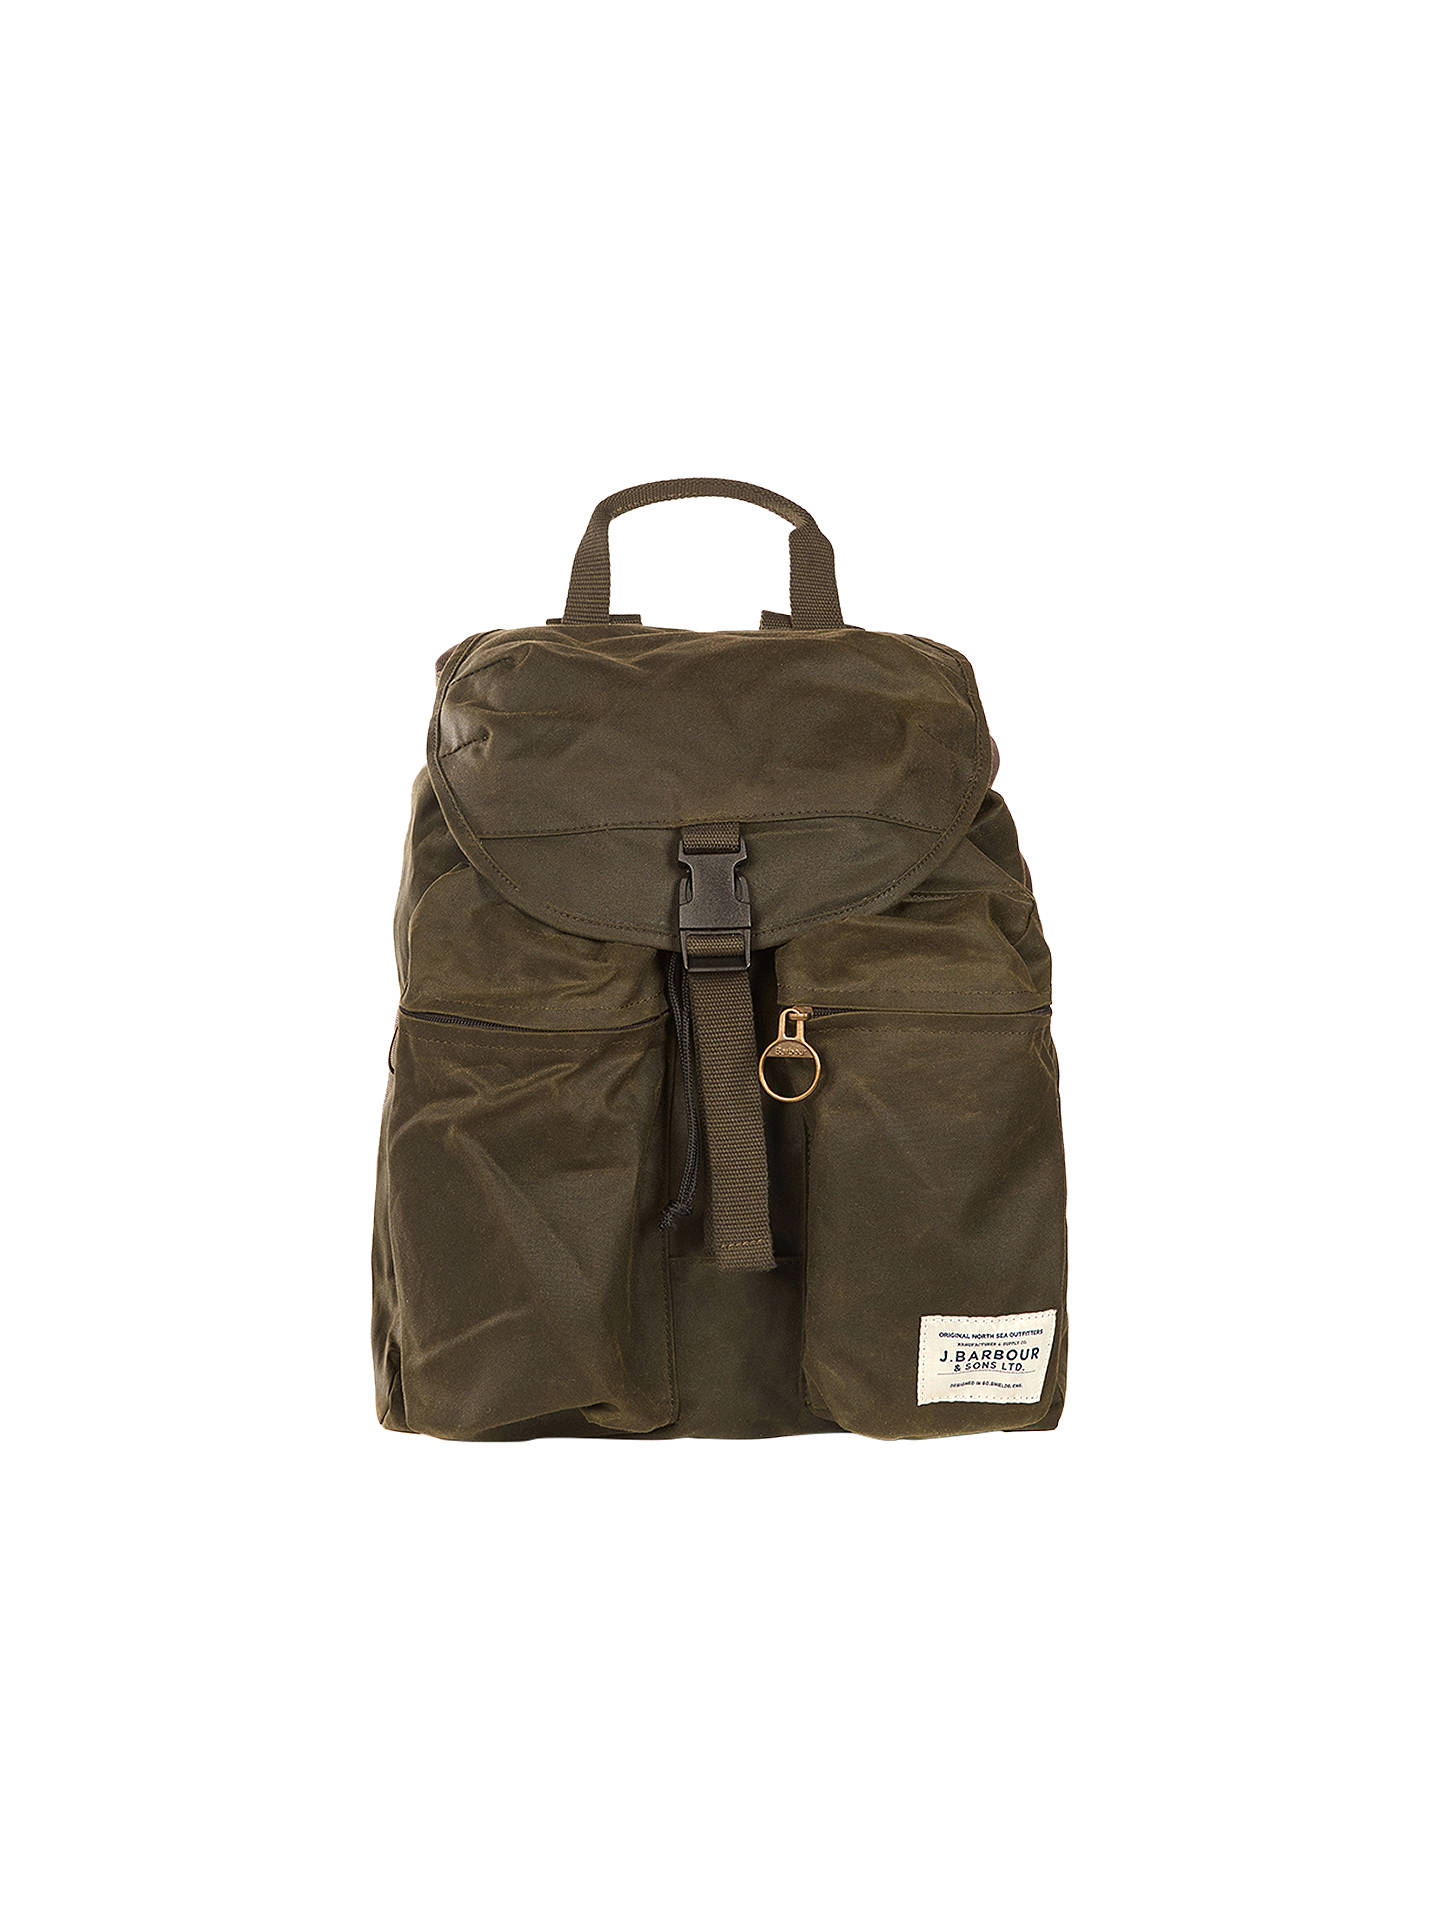 c8ccaf39a Barbour Archive Waxed Cotton Backpack, Olive